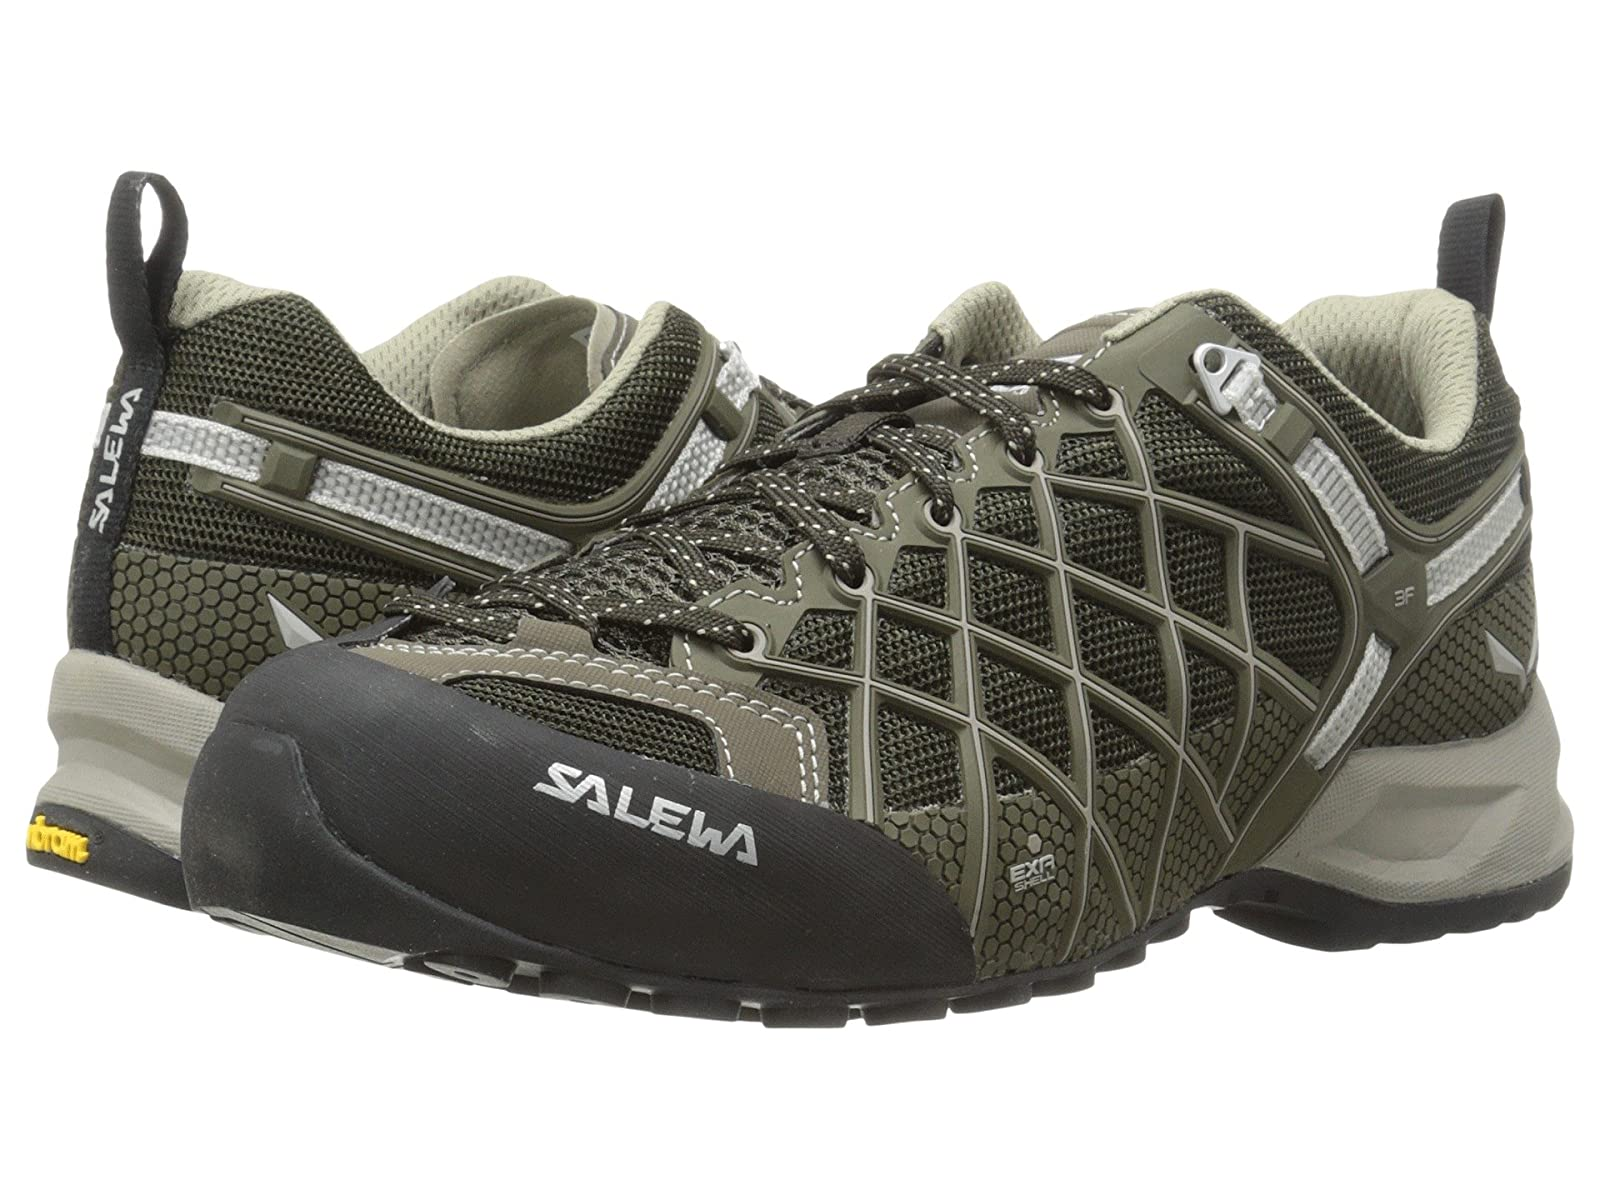 SALEWA Wildfire VentCheap and distinctive eye-catching shoes